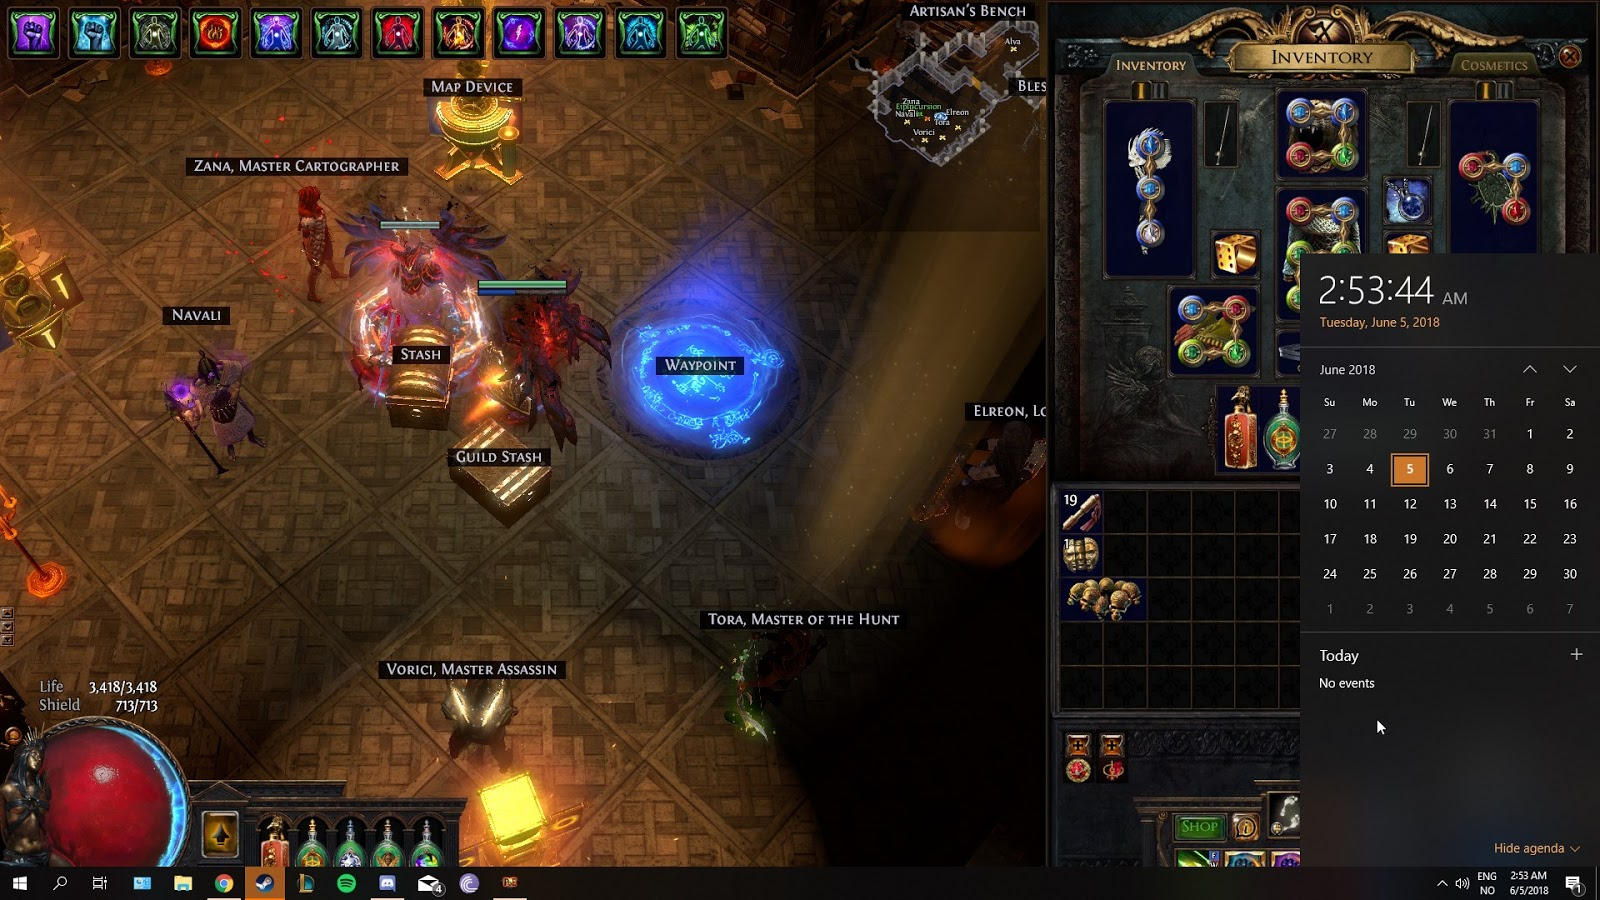 POE 3 3 Ranger For Disregard Females,Acquire Currency Build